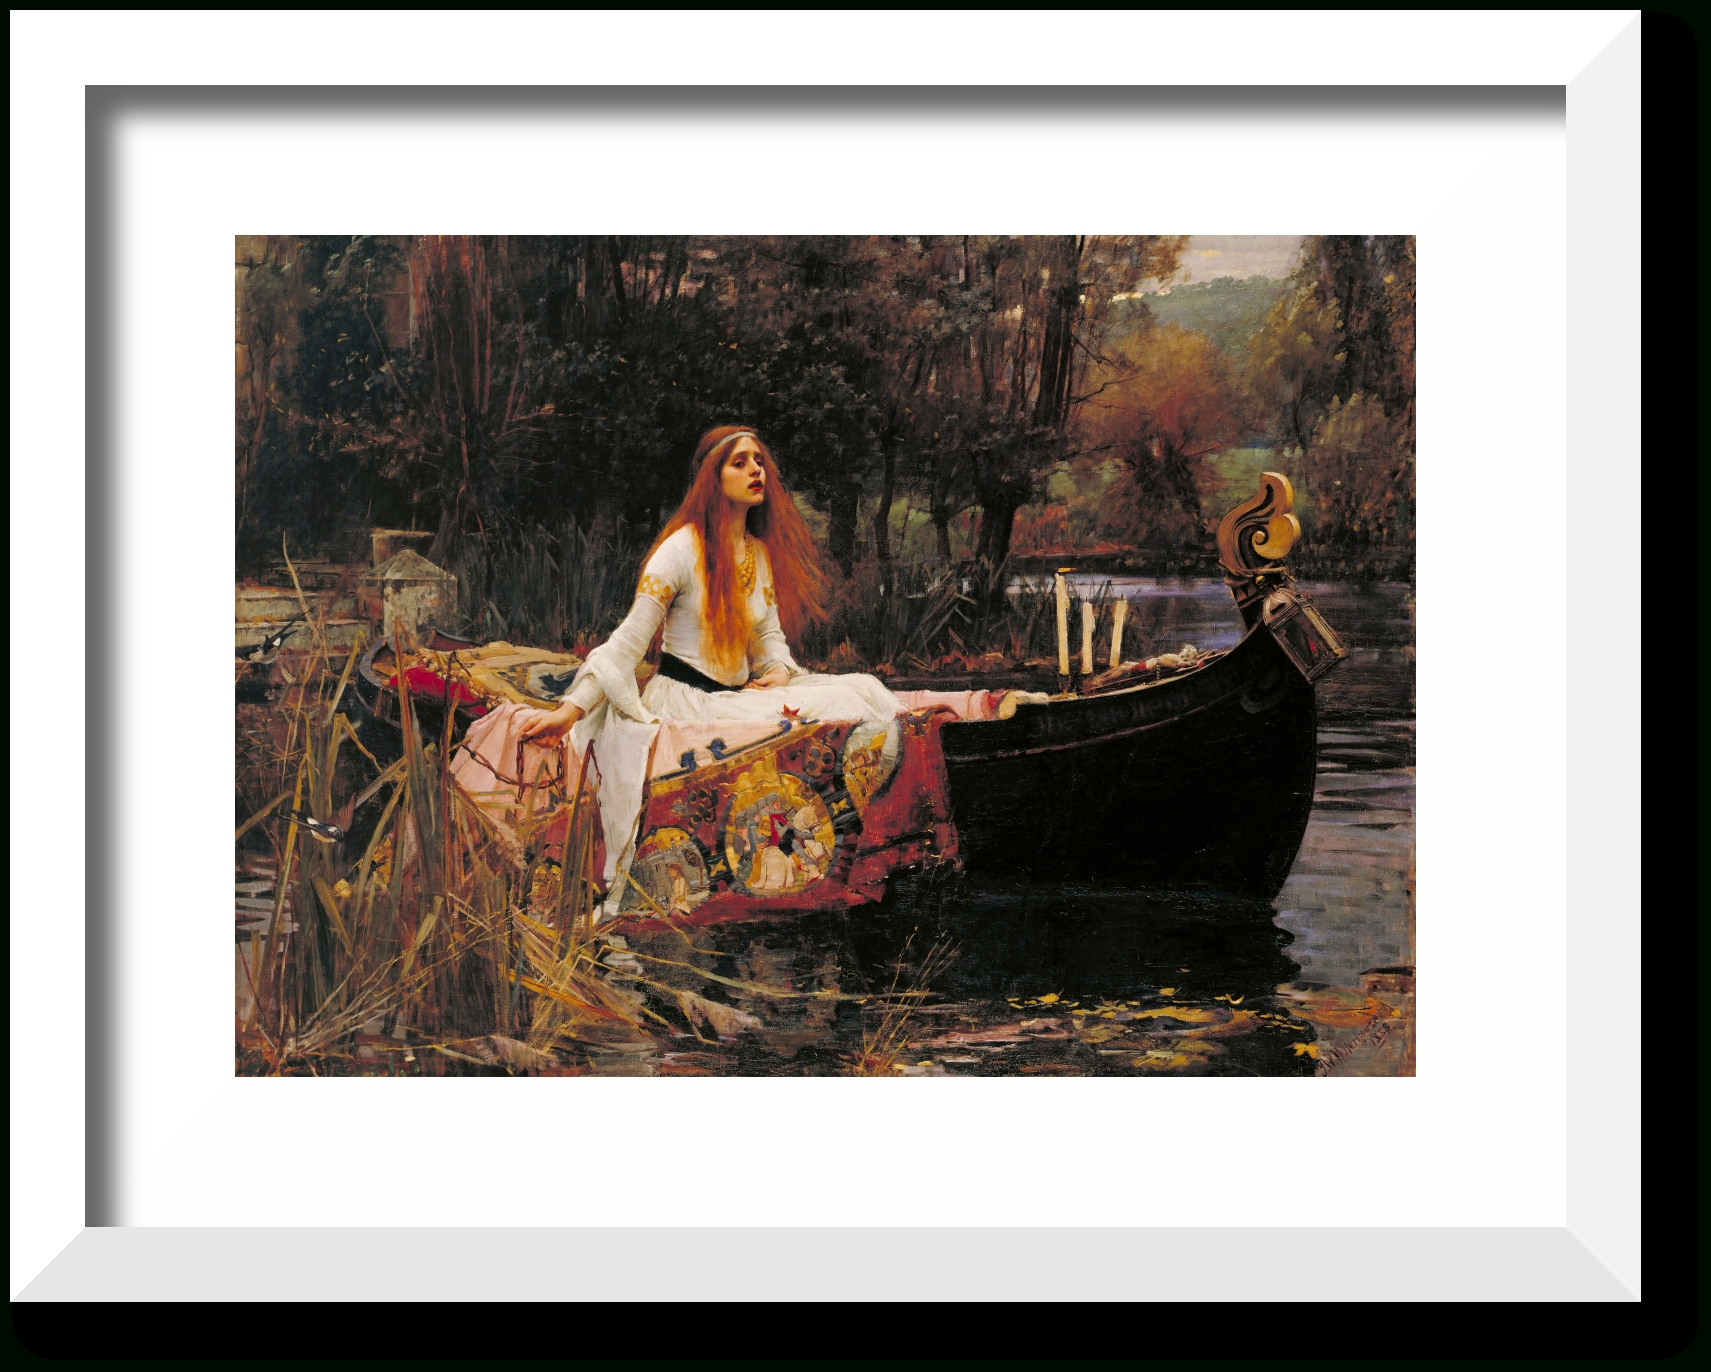 Felician Rops Framed Canvas Giclee Prints With Archival Inks Uk For Most Recent Famous Art Framed Prints (View 8 of 15)